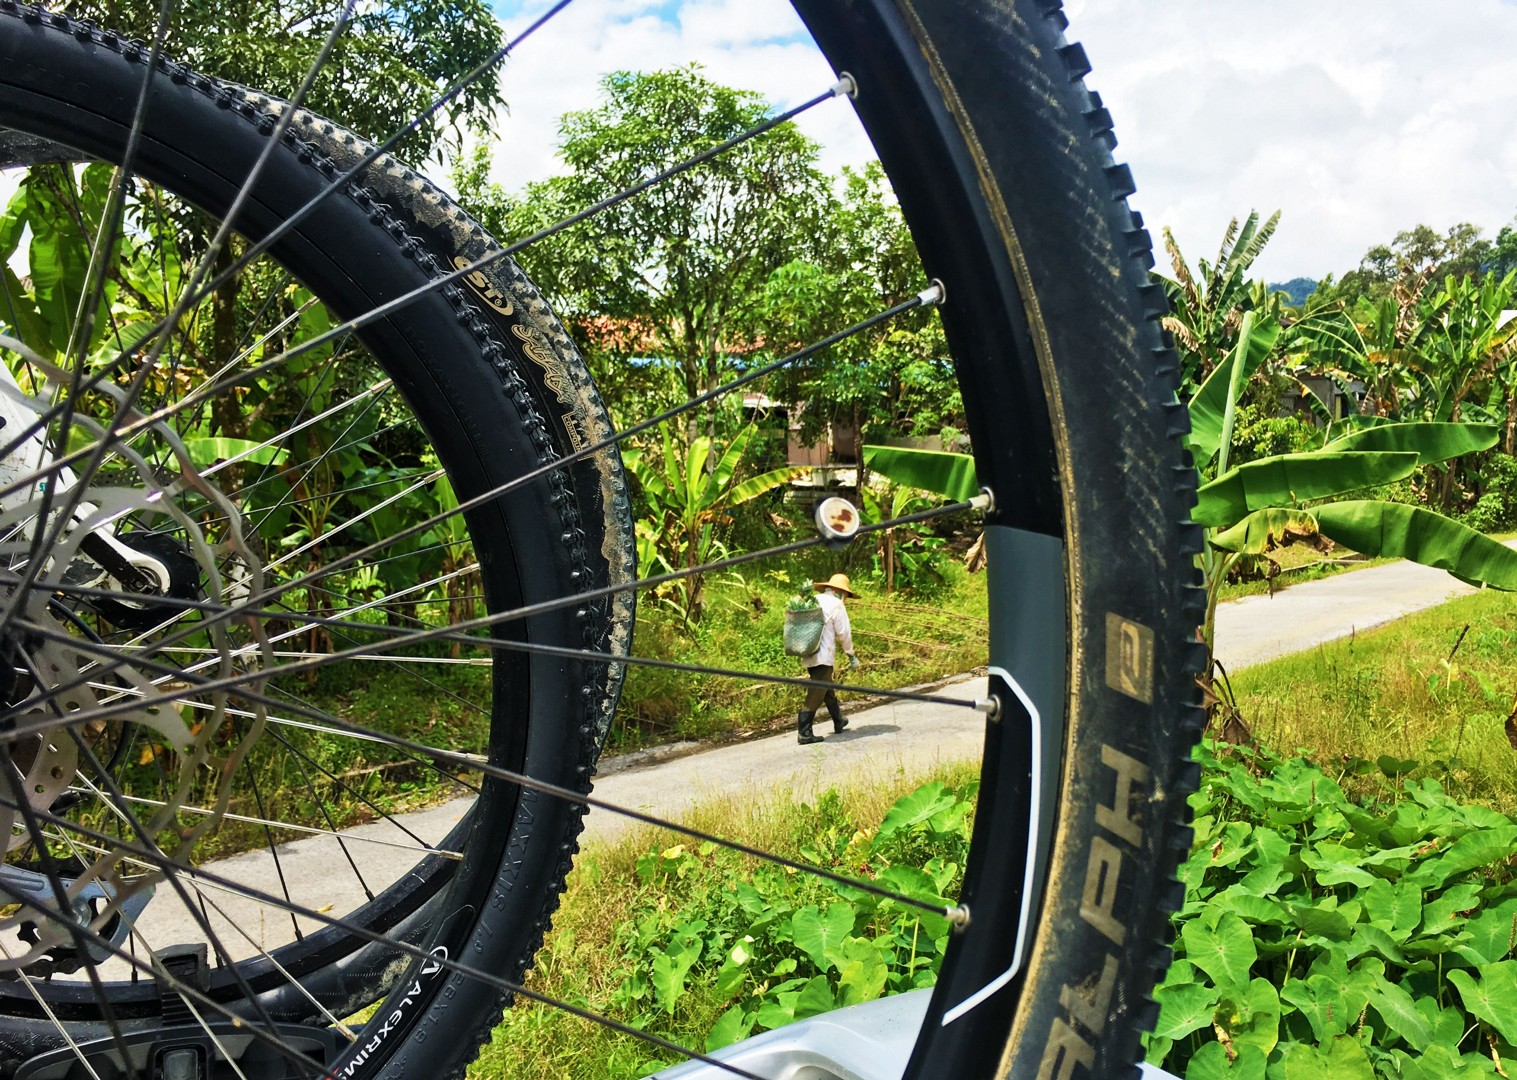 cycling-adventure-borneo-tropical.jpg - NEW! Borneo - Secret Sarawak - Cycling Adventures